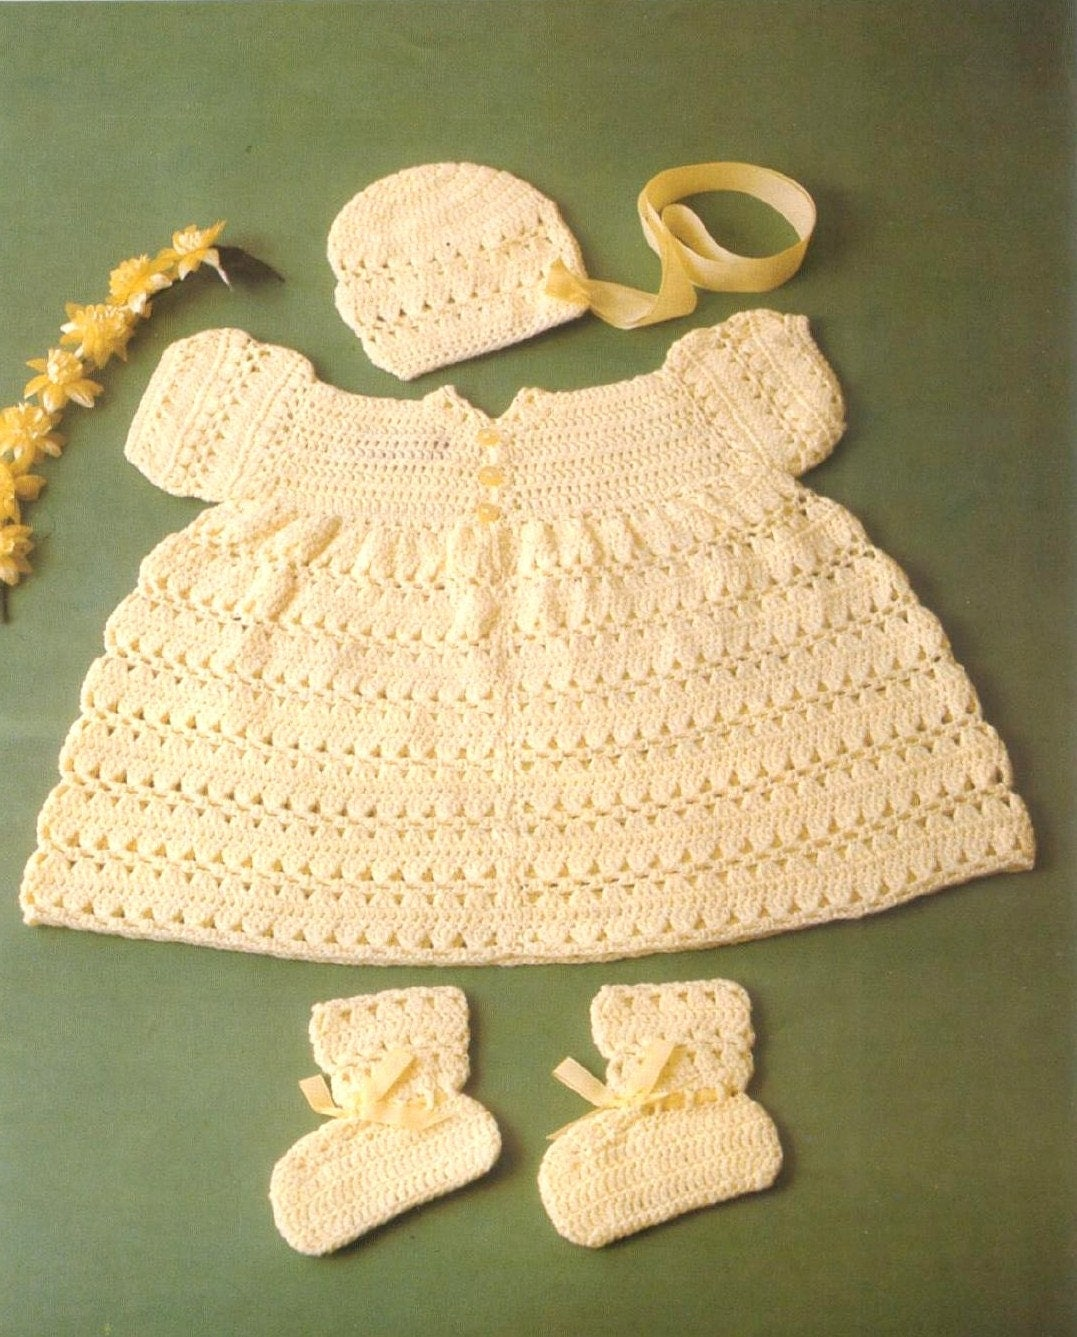 Crochet Baby Dress And Bonnet Pattern : Baby CROCHET PATTERN Baby Dress Bonnet and Booties in 3ply